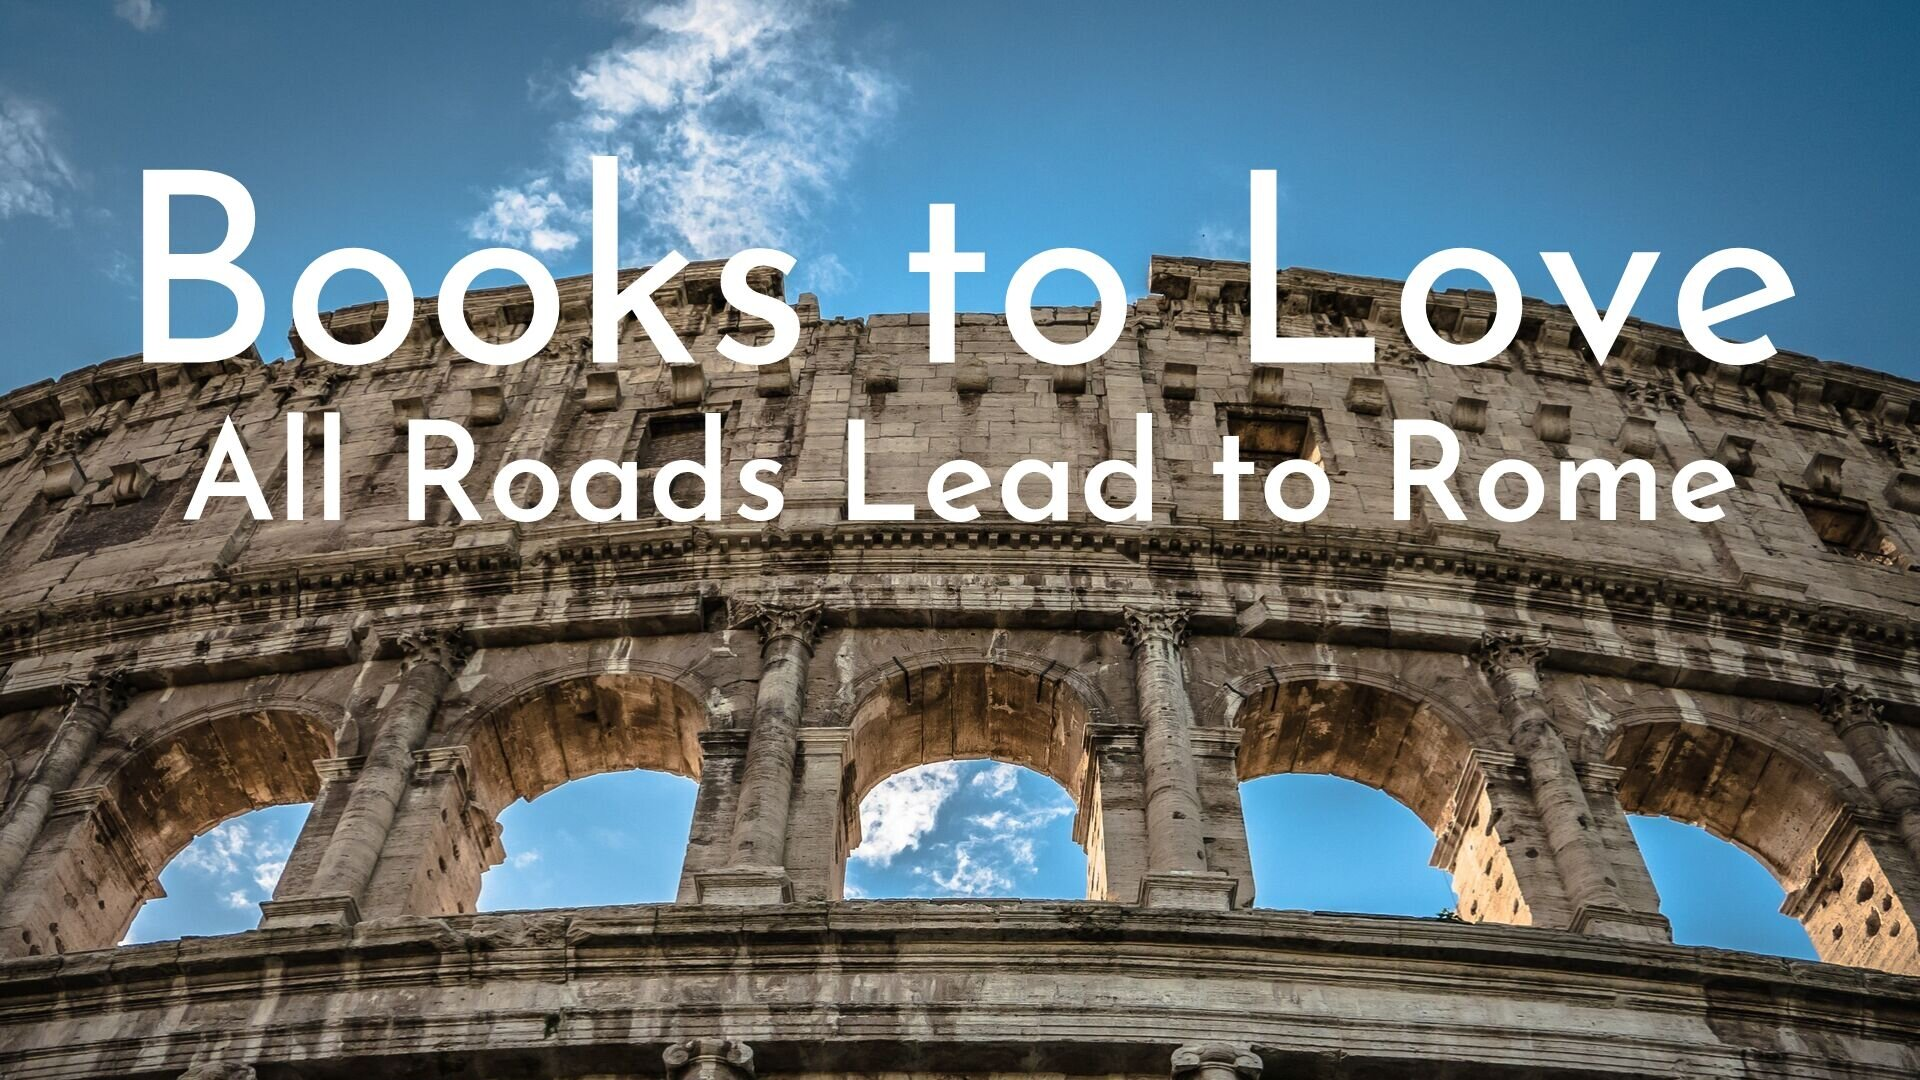 banner-books-to-love-all-roads-lead-to-rome-01.jpg